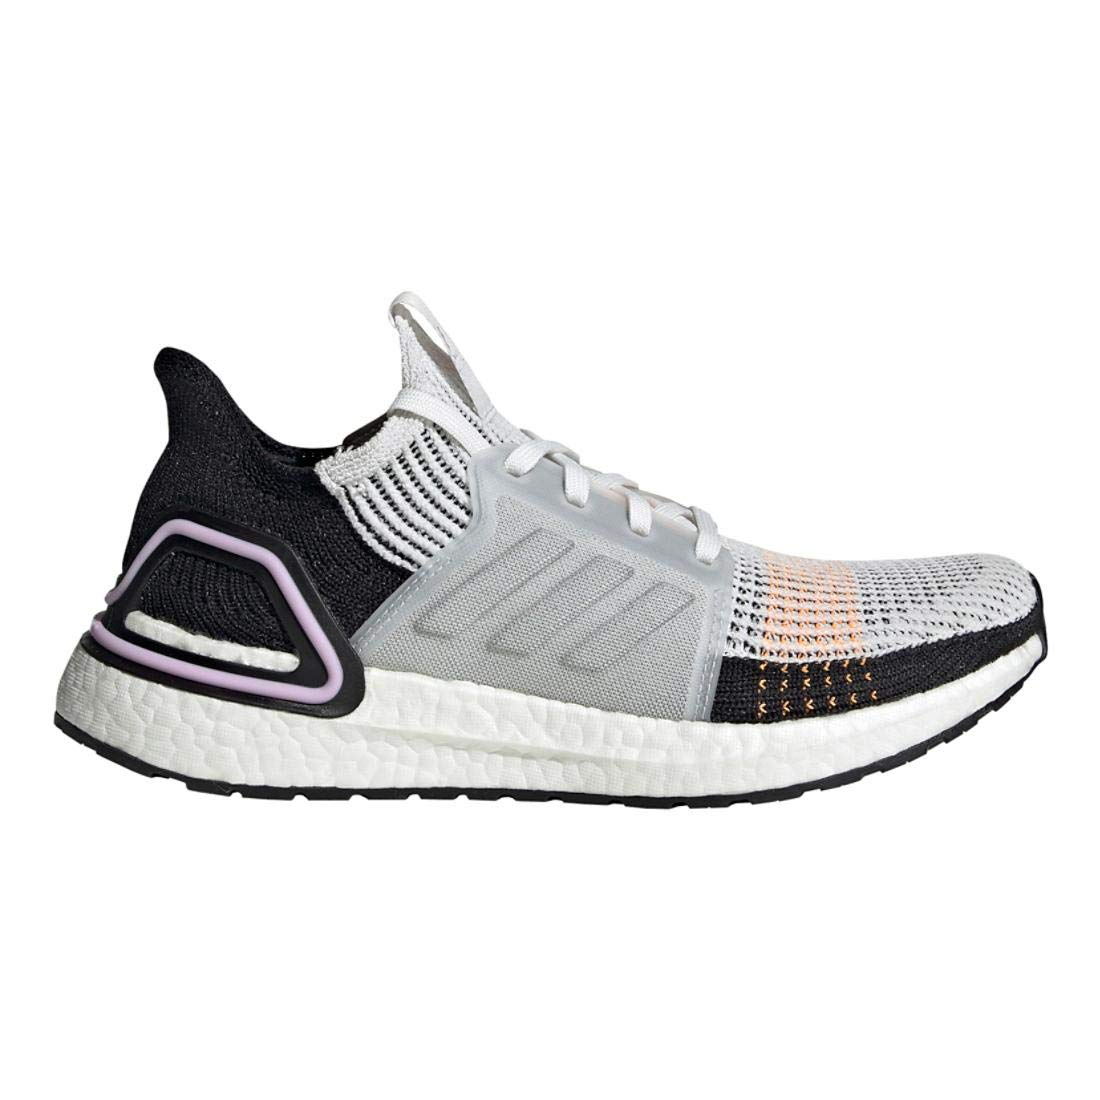 adidas Women's Ultraboost 19 Running Shoe, Crystal White/Black, 9 M US by adidas